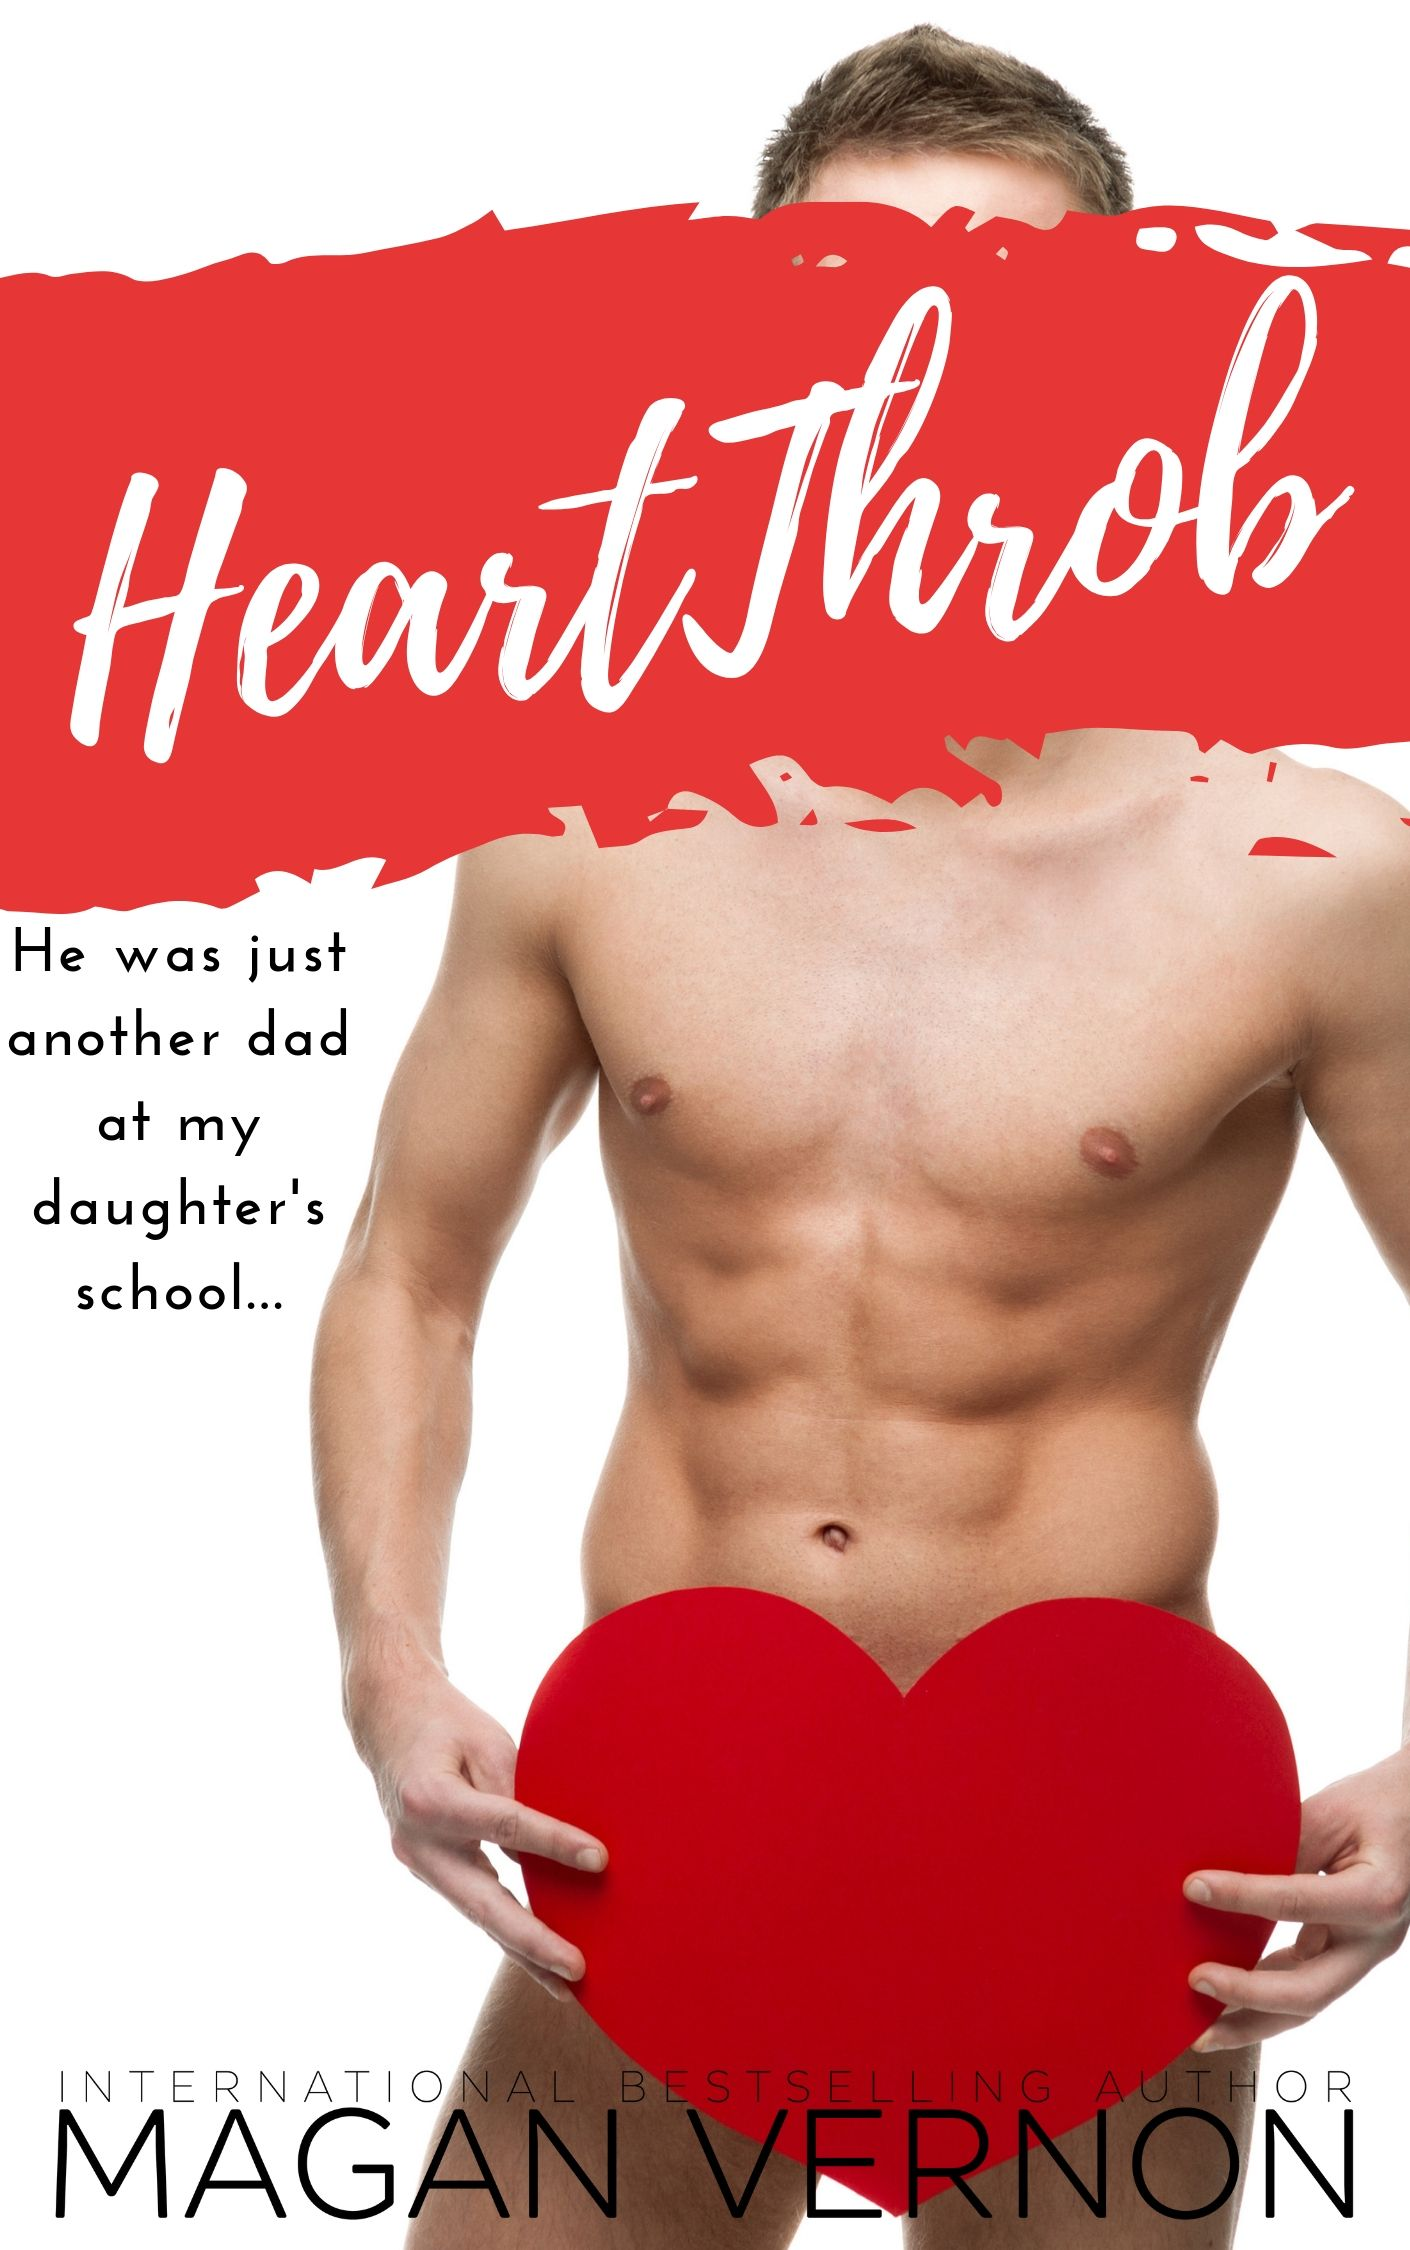 HeartThrob by Magan Vernon